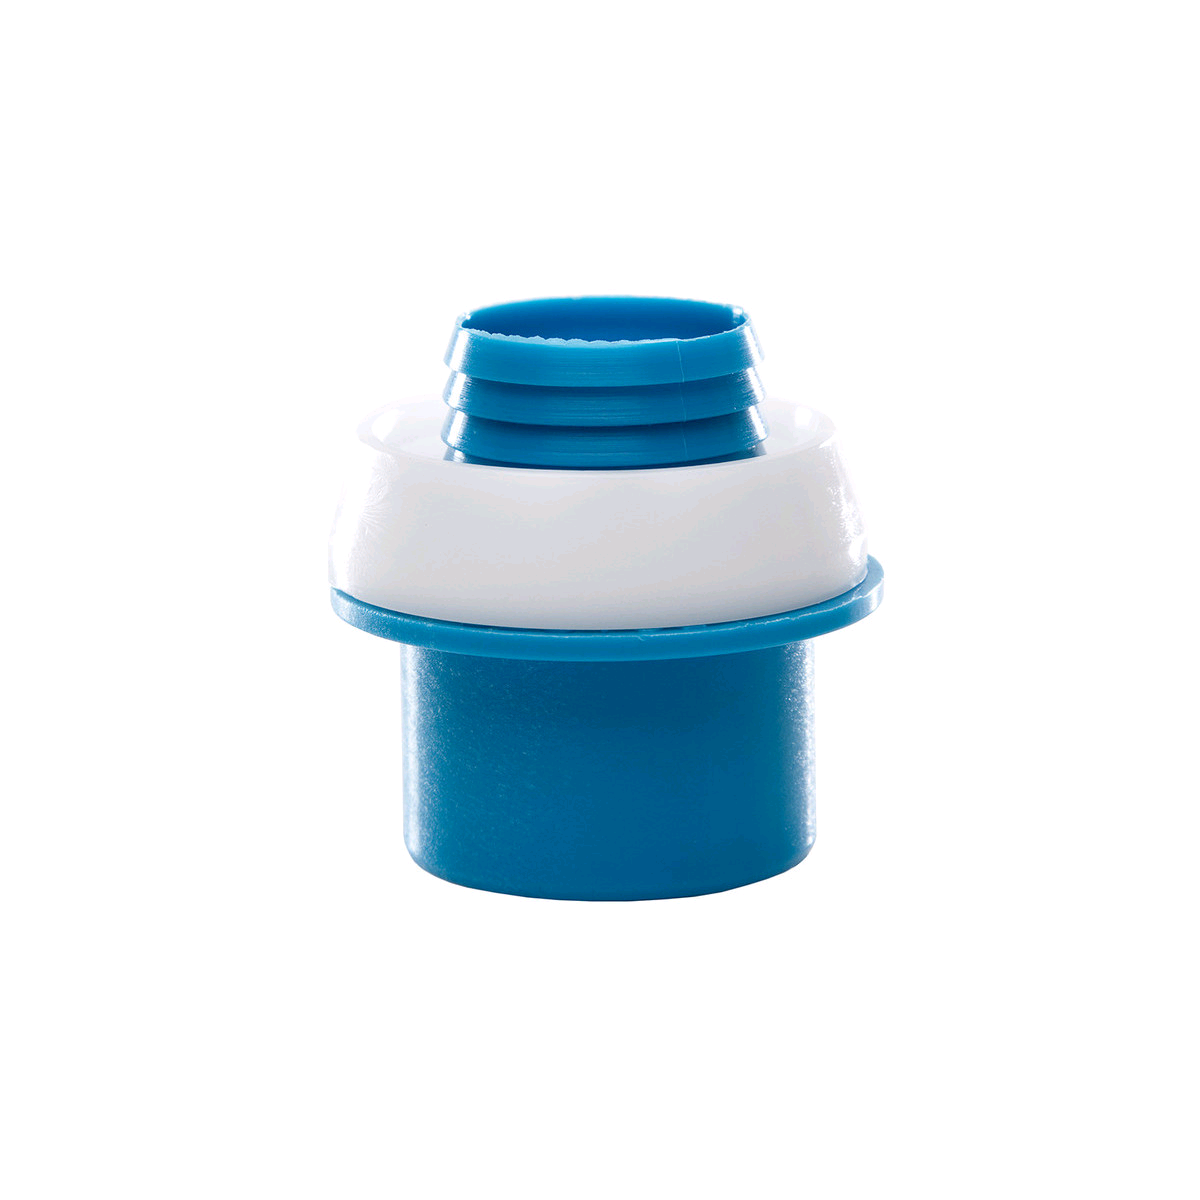 Polypipe Class C Adaptor Set Blue 25mm x 3/4""